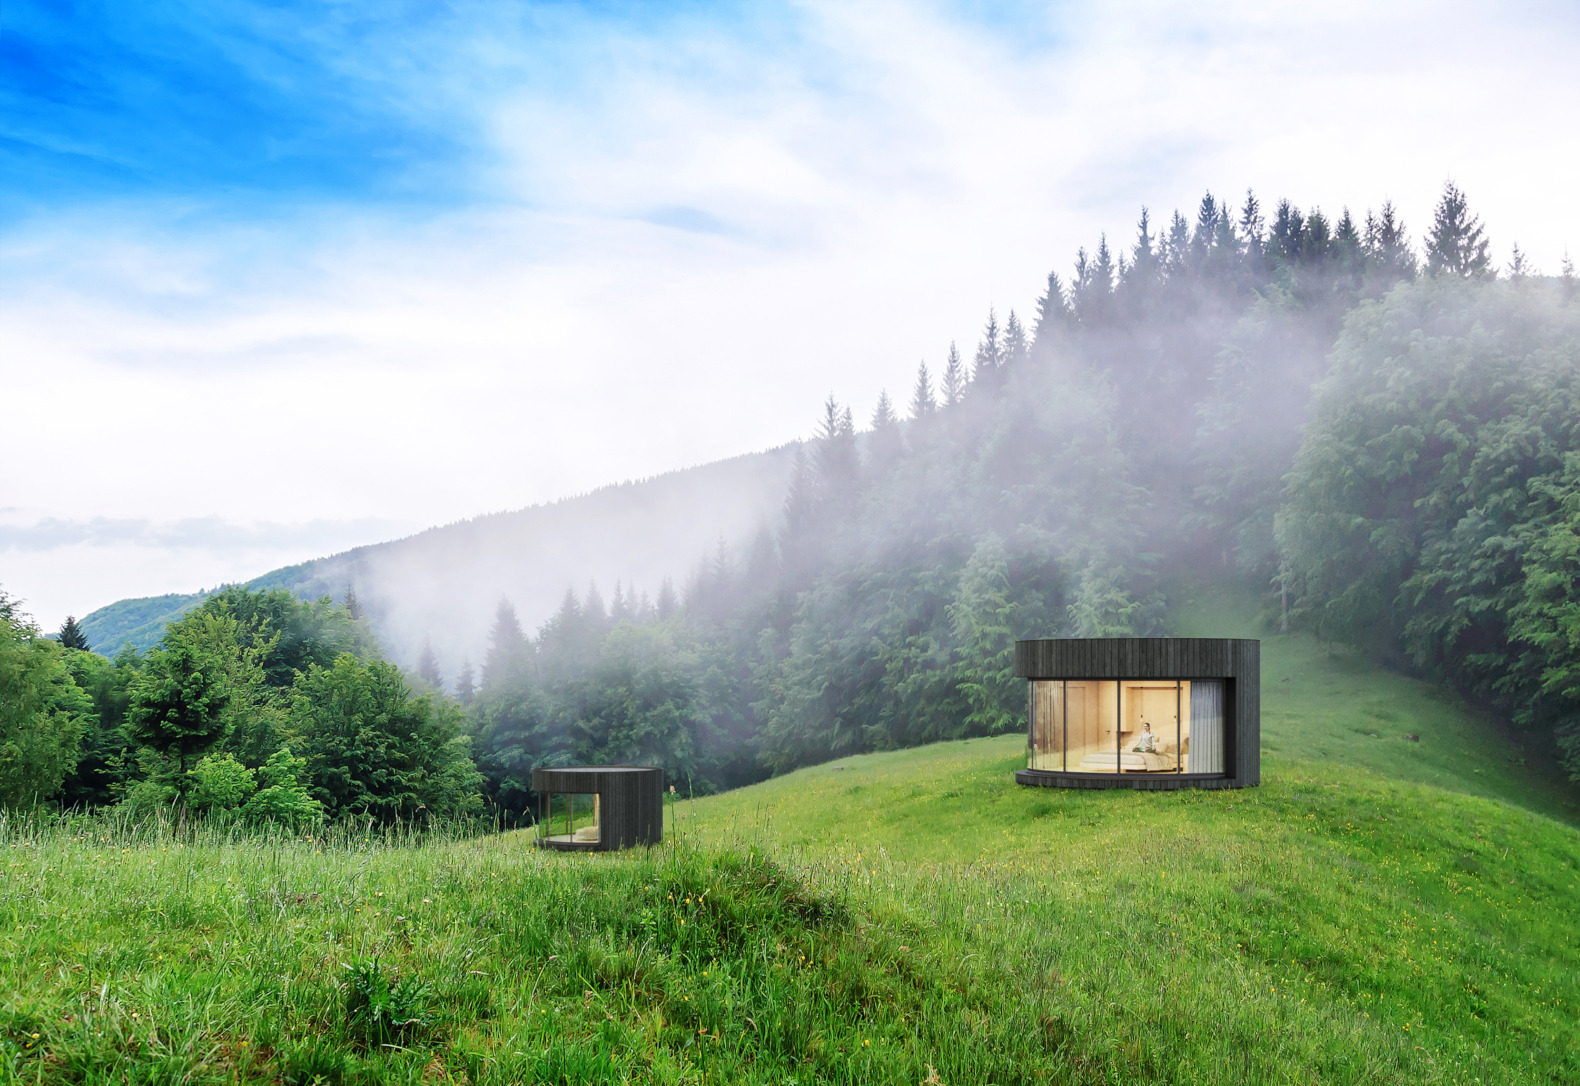 Round, minimalist cabins with sliding glass walls take glamping up a notch